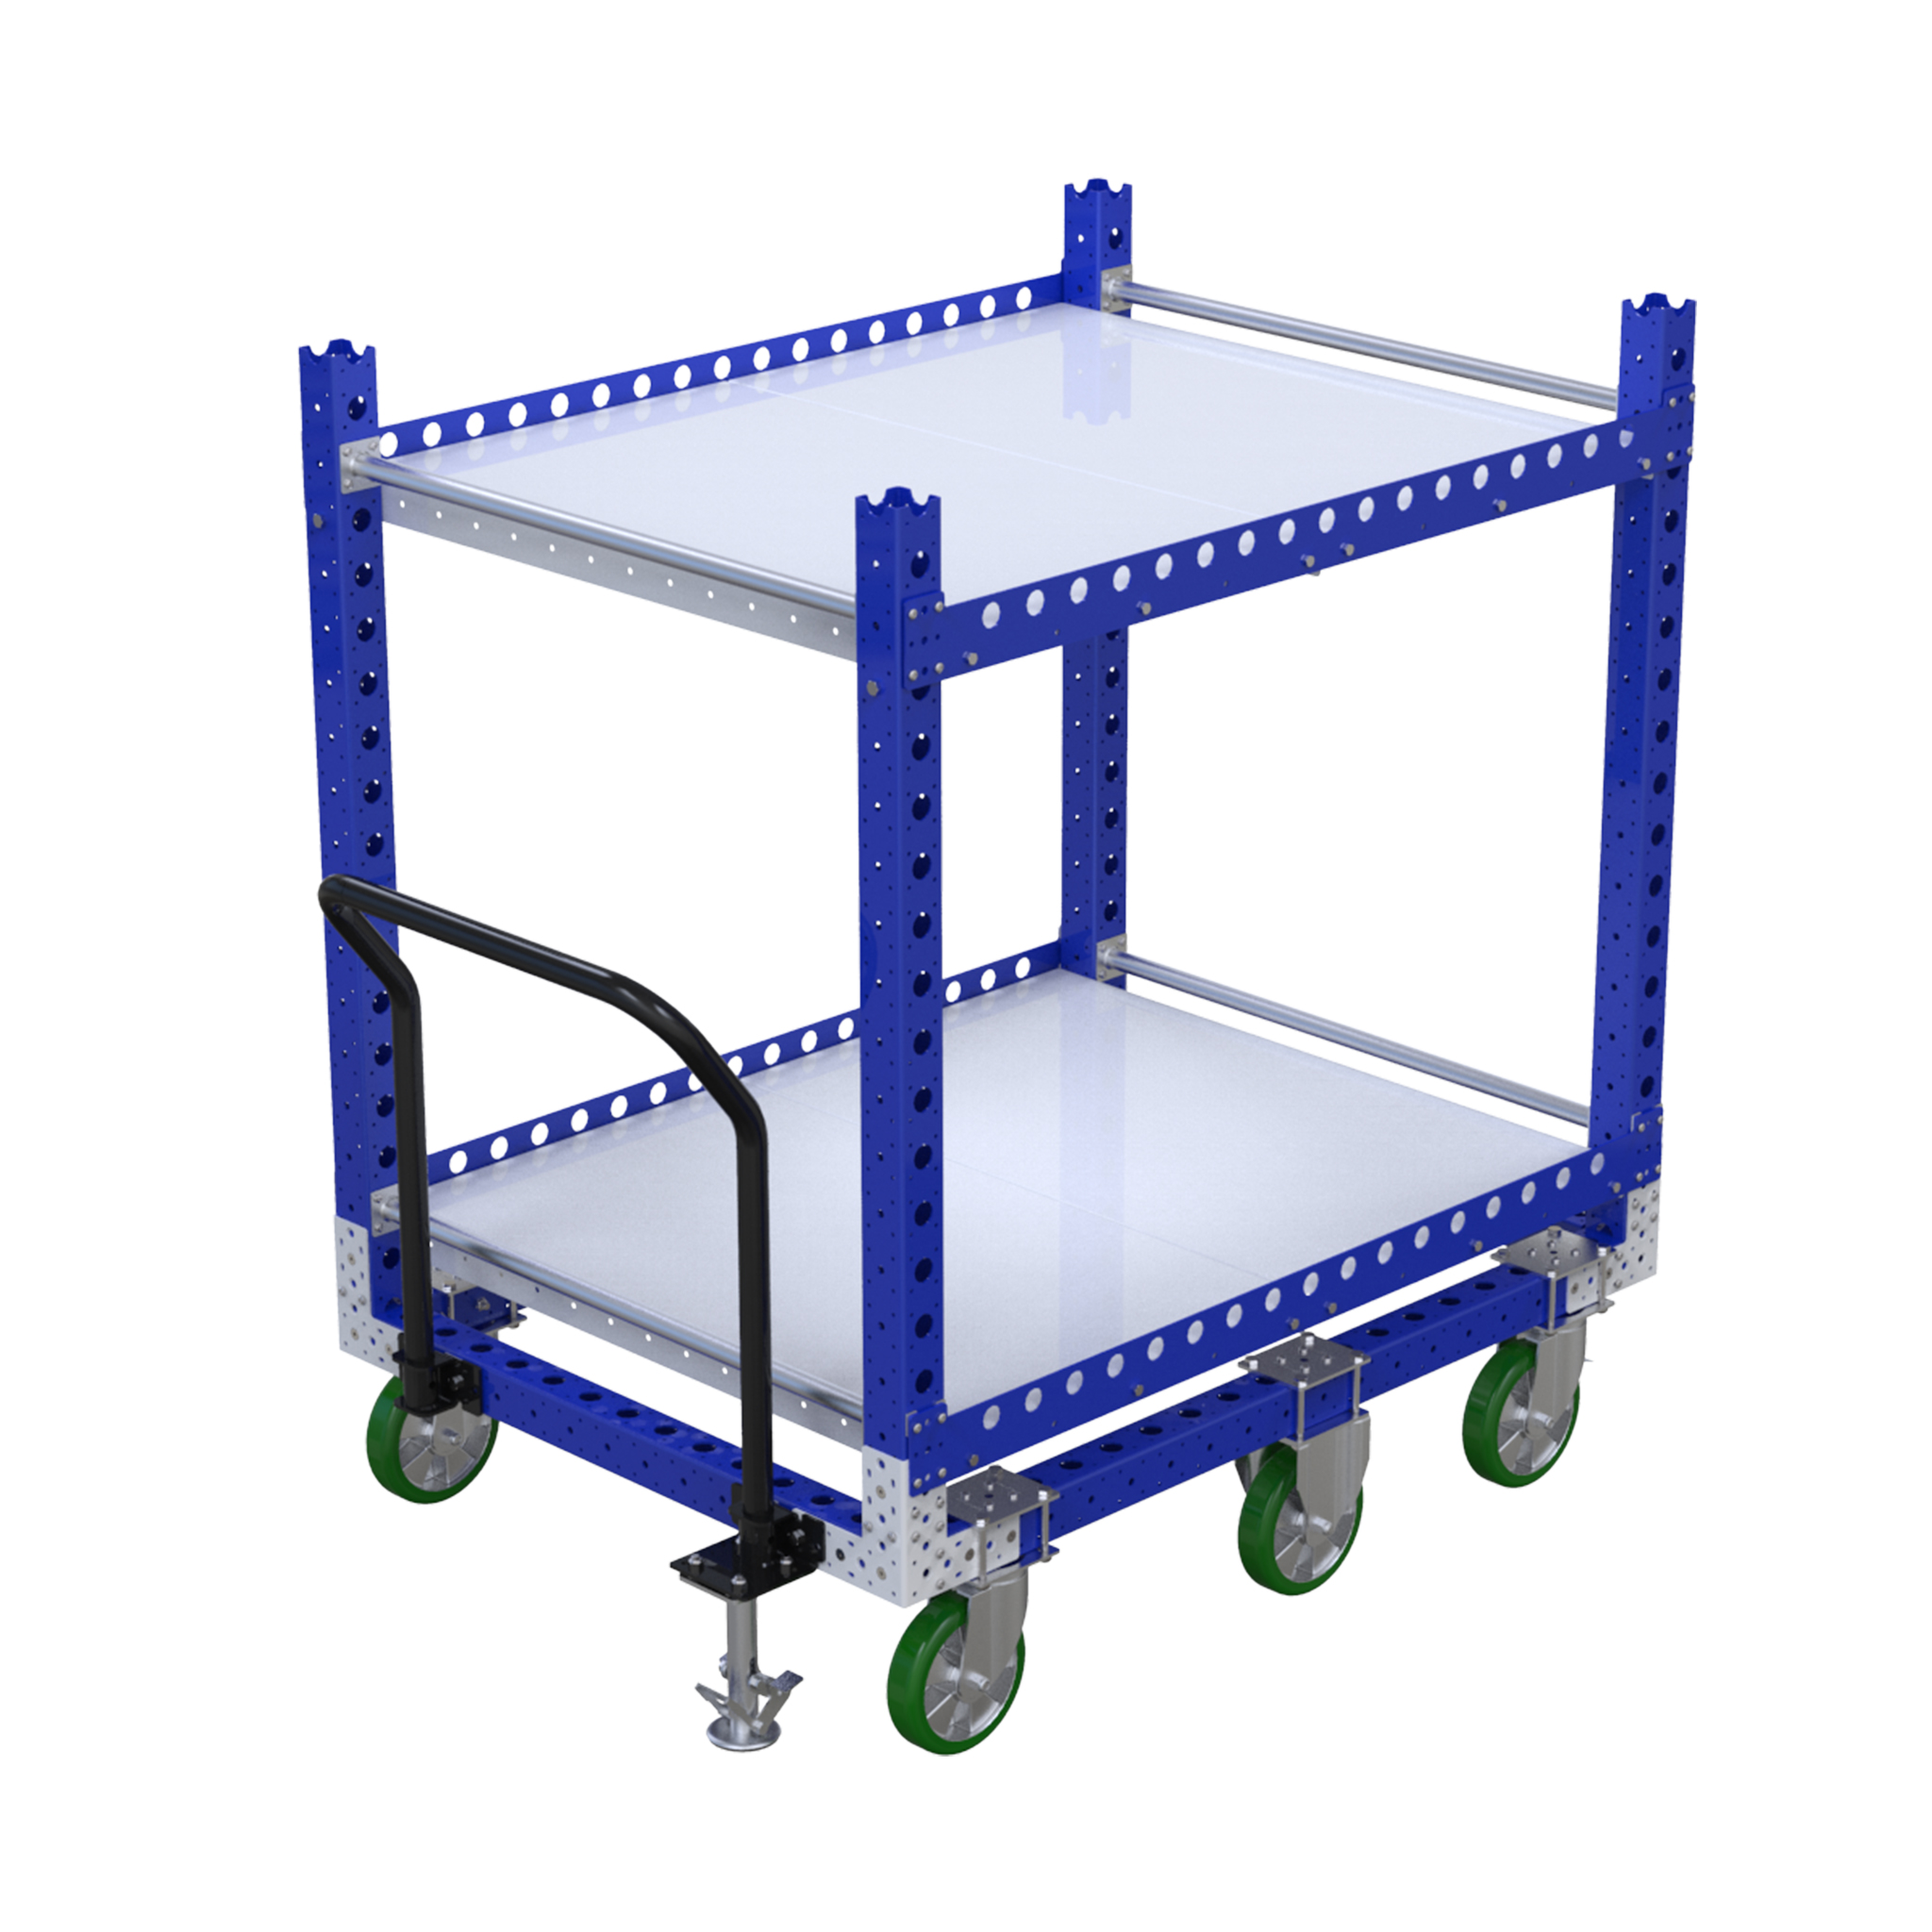 Two shelf cart by FlexQube